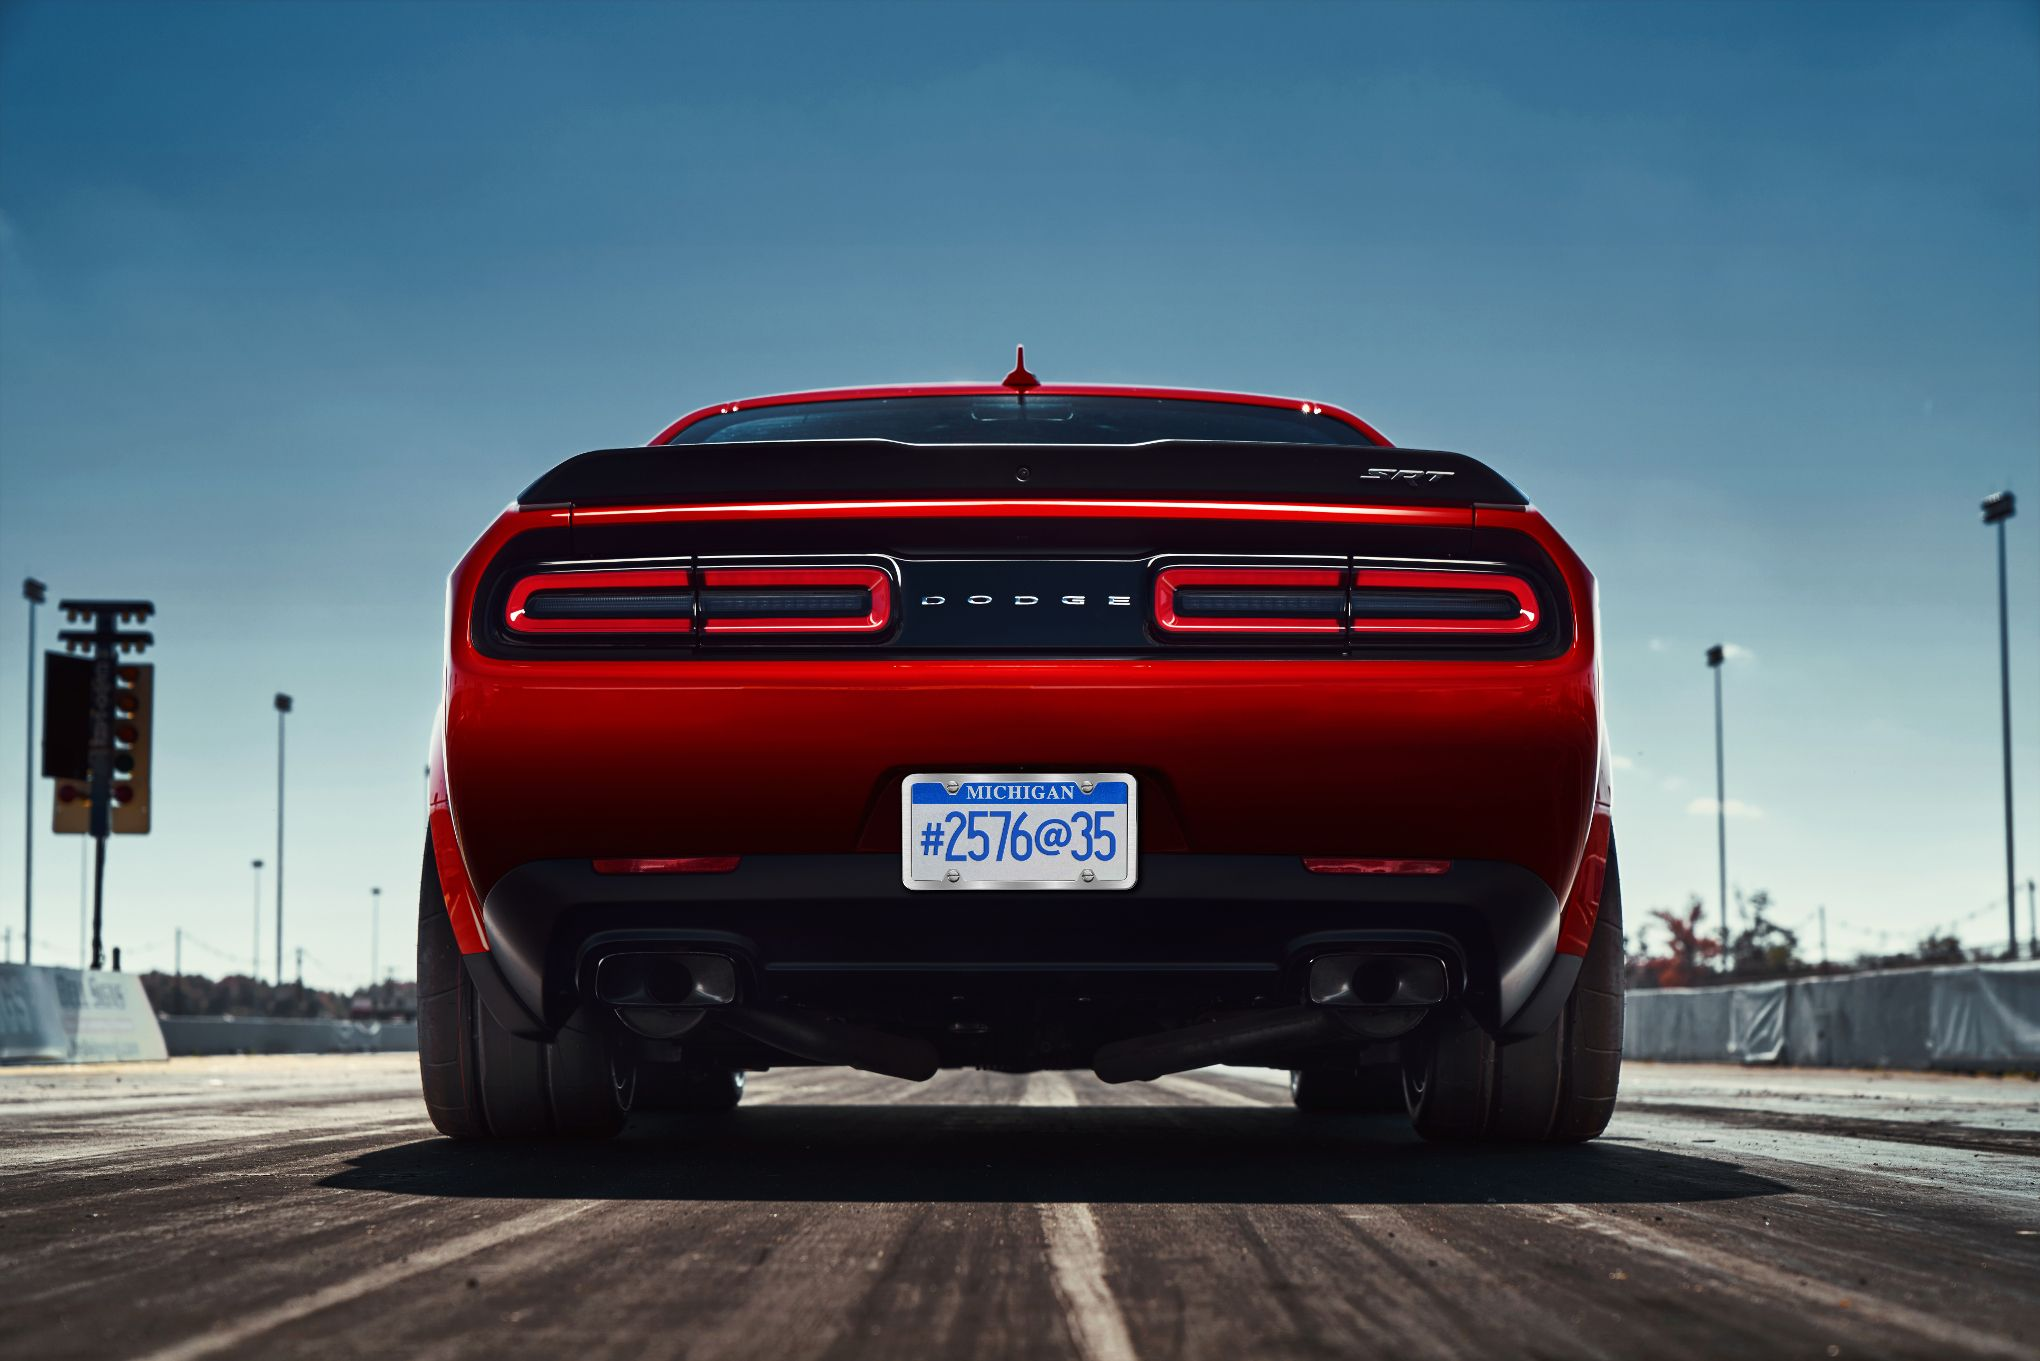 New teaser on 2018 dodge challenger srt demon if you are looking forward to find out